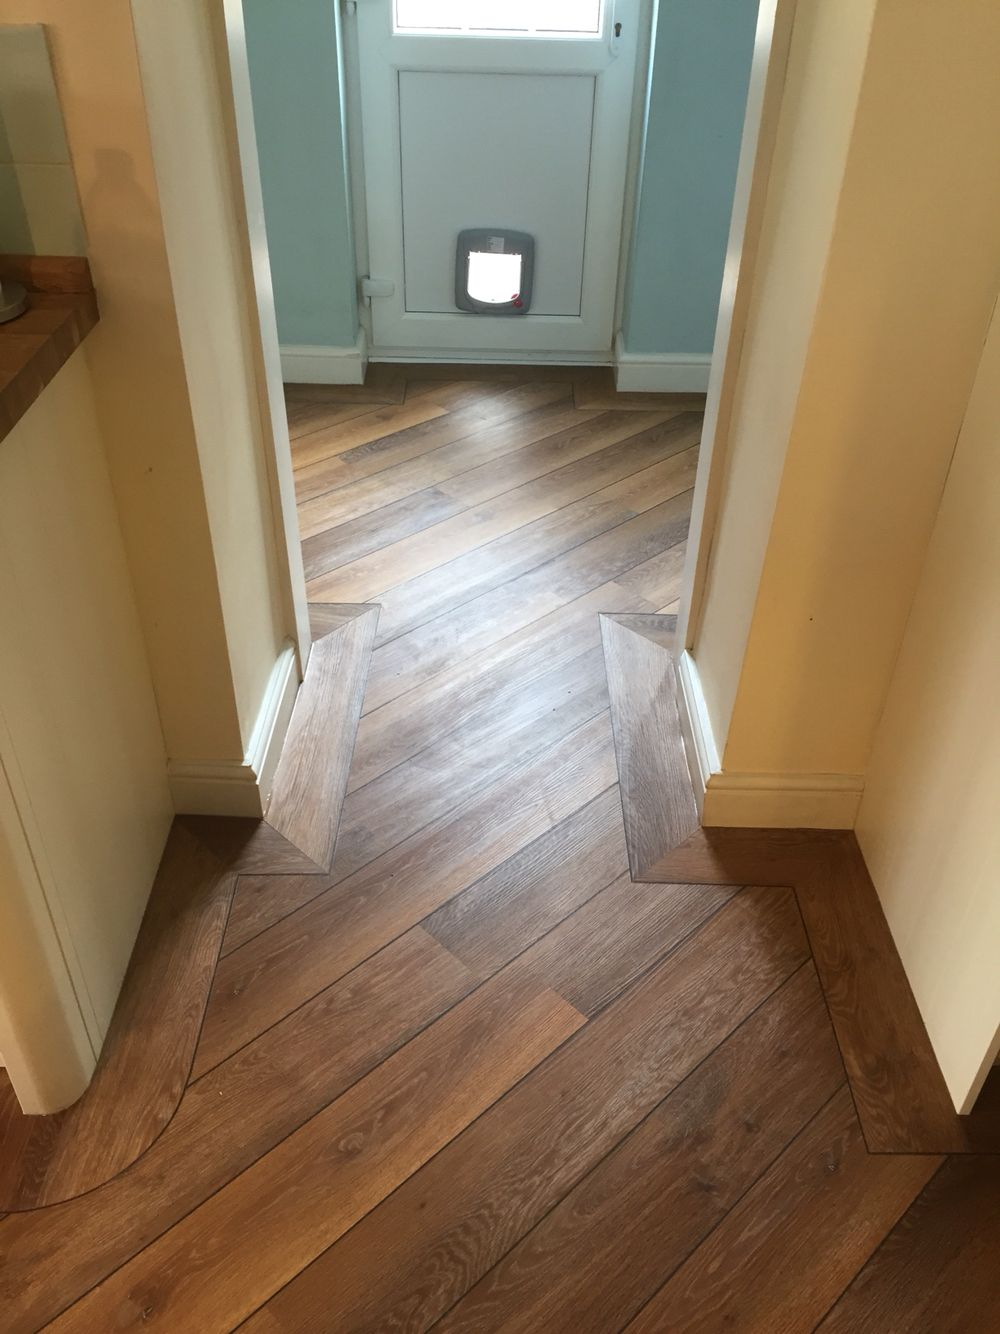 Karndean Wood Laid To Kitchen And Utility With Border And